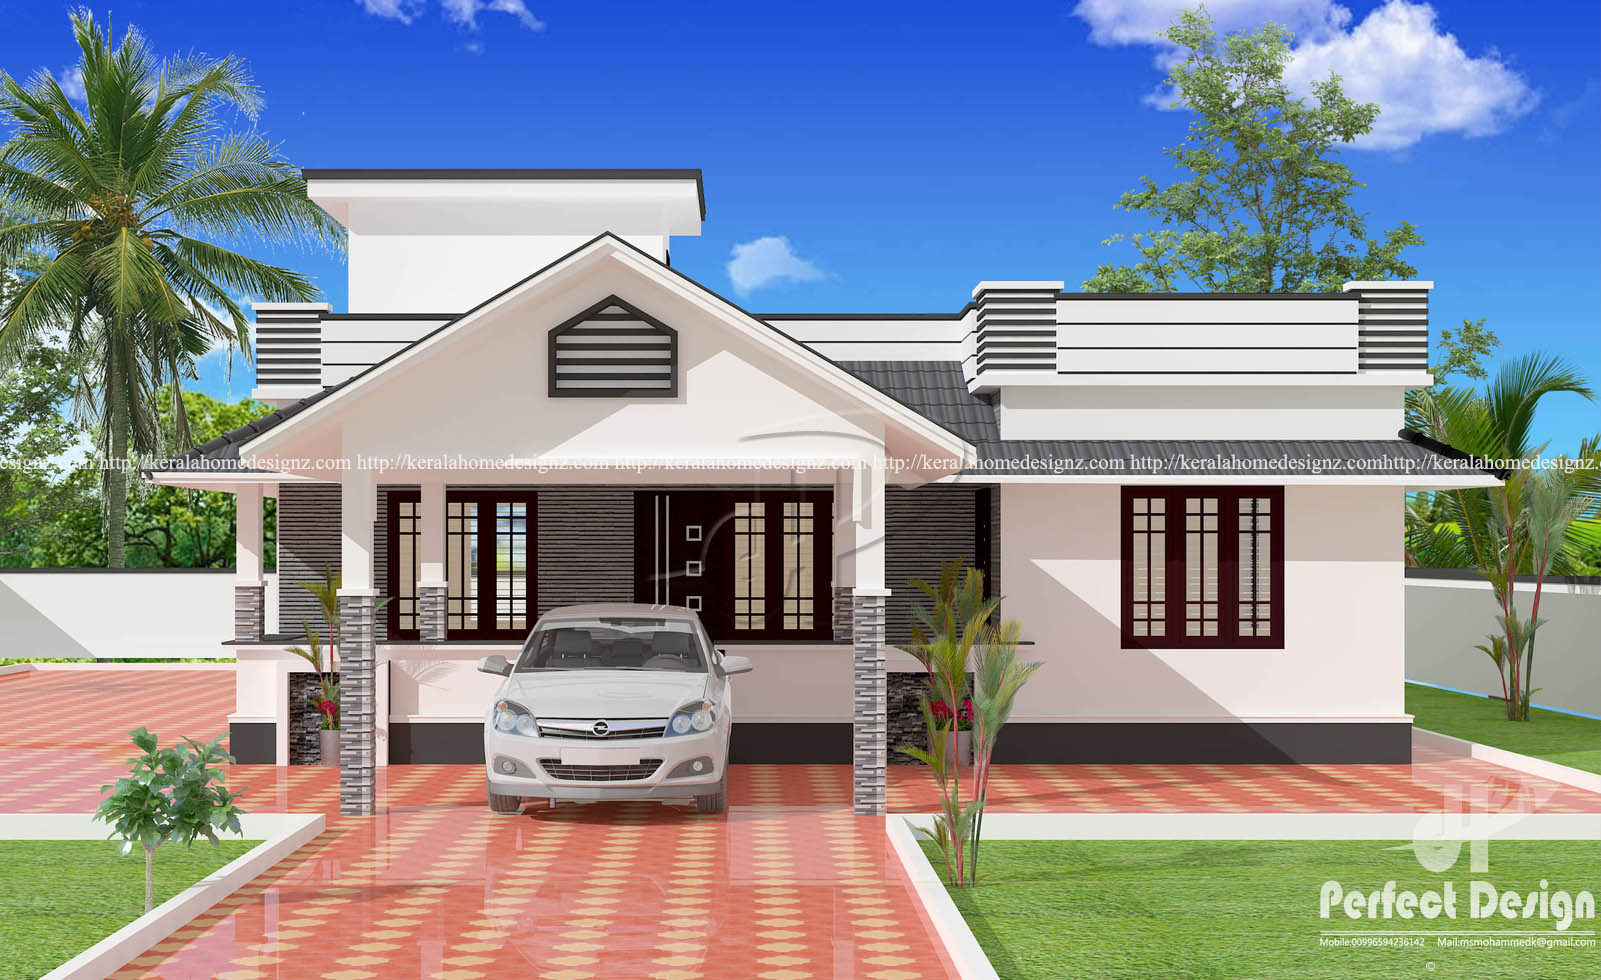 1153 Sq ft Single Floor 3 Bedroom House Kerala Home Design